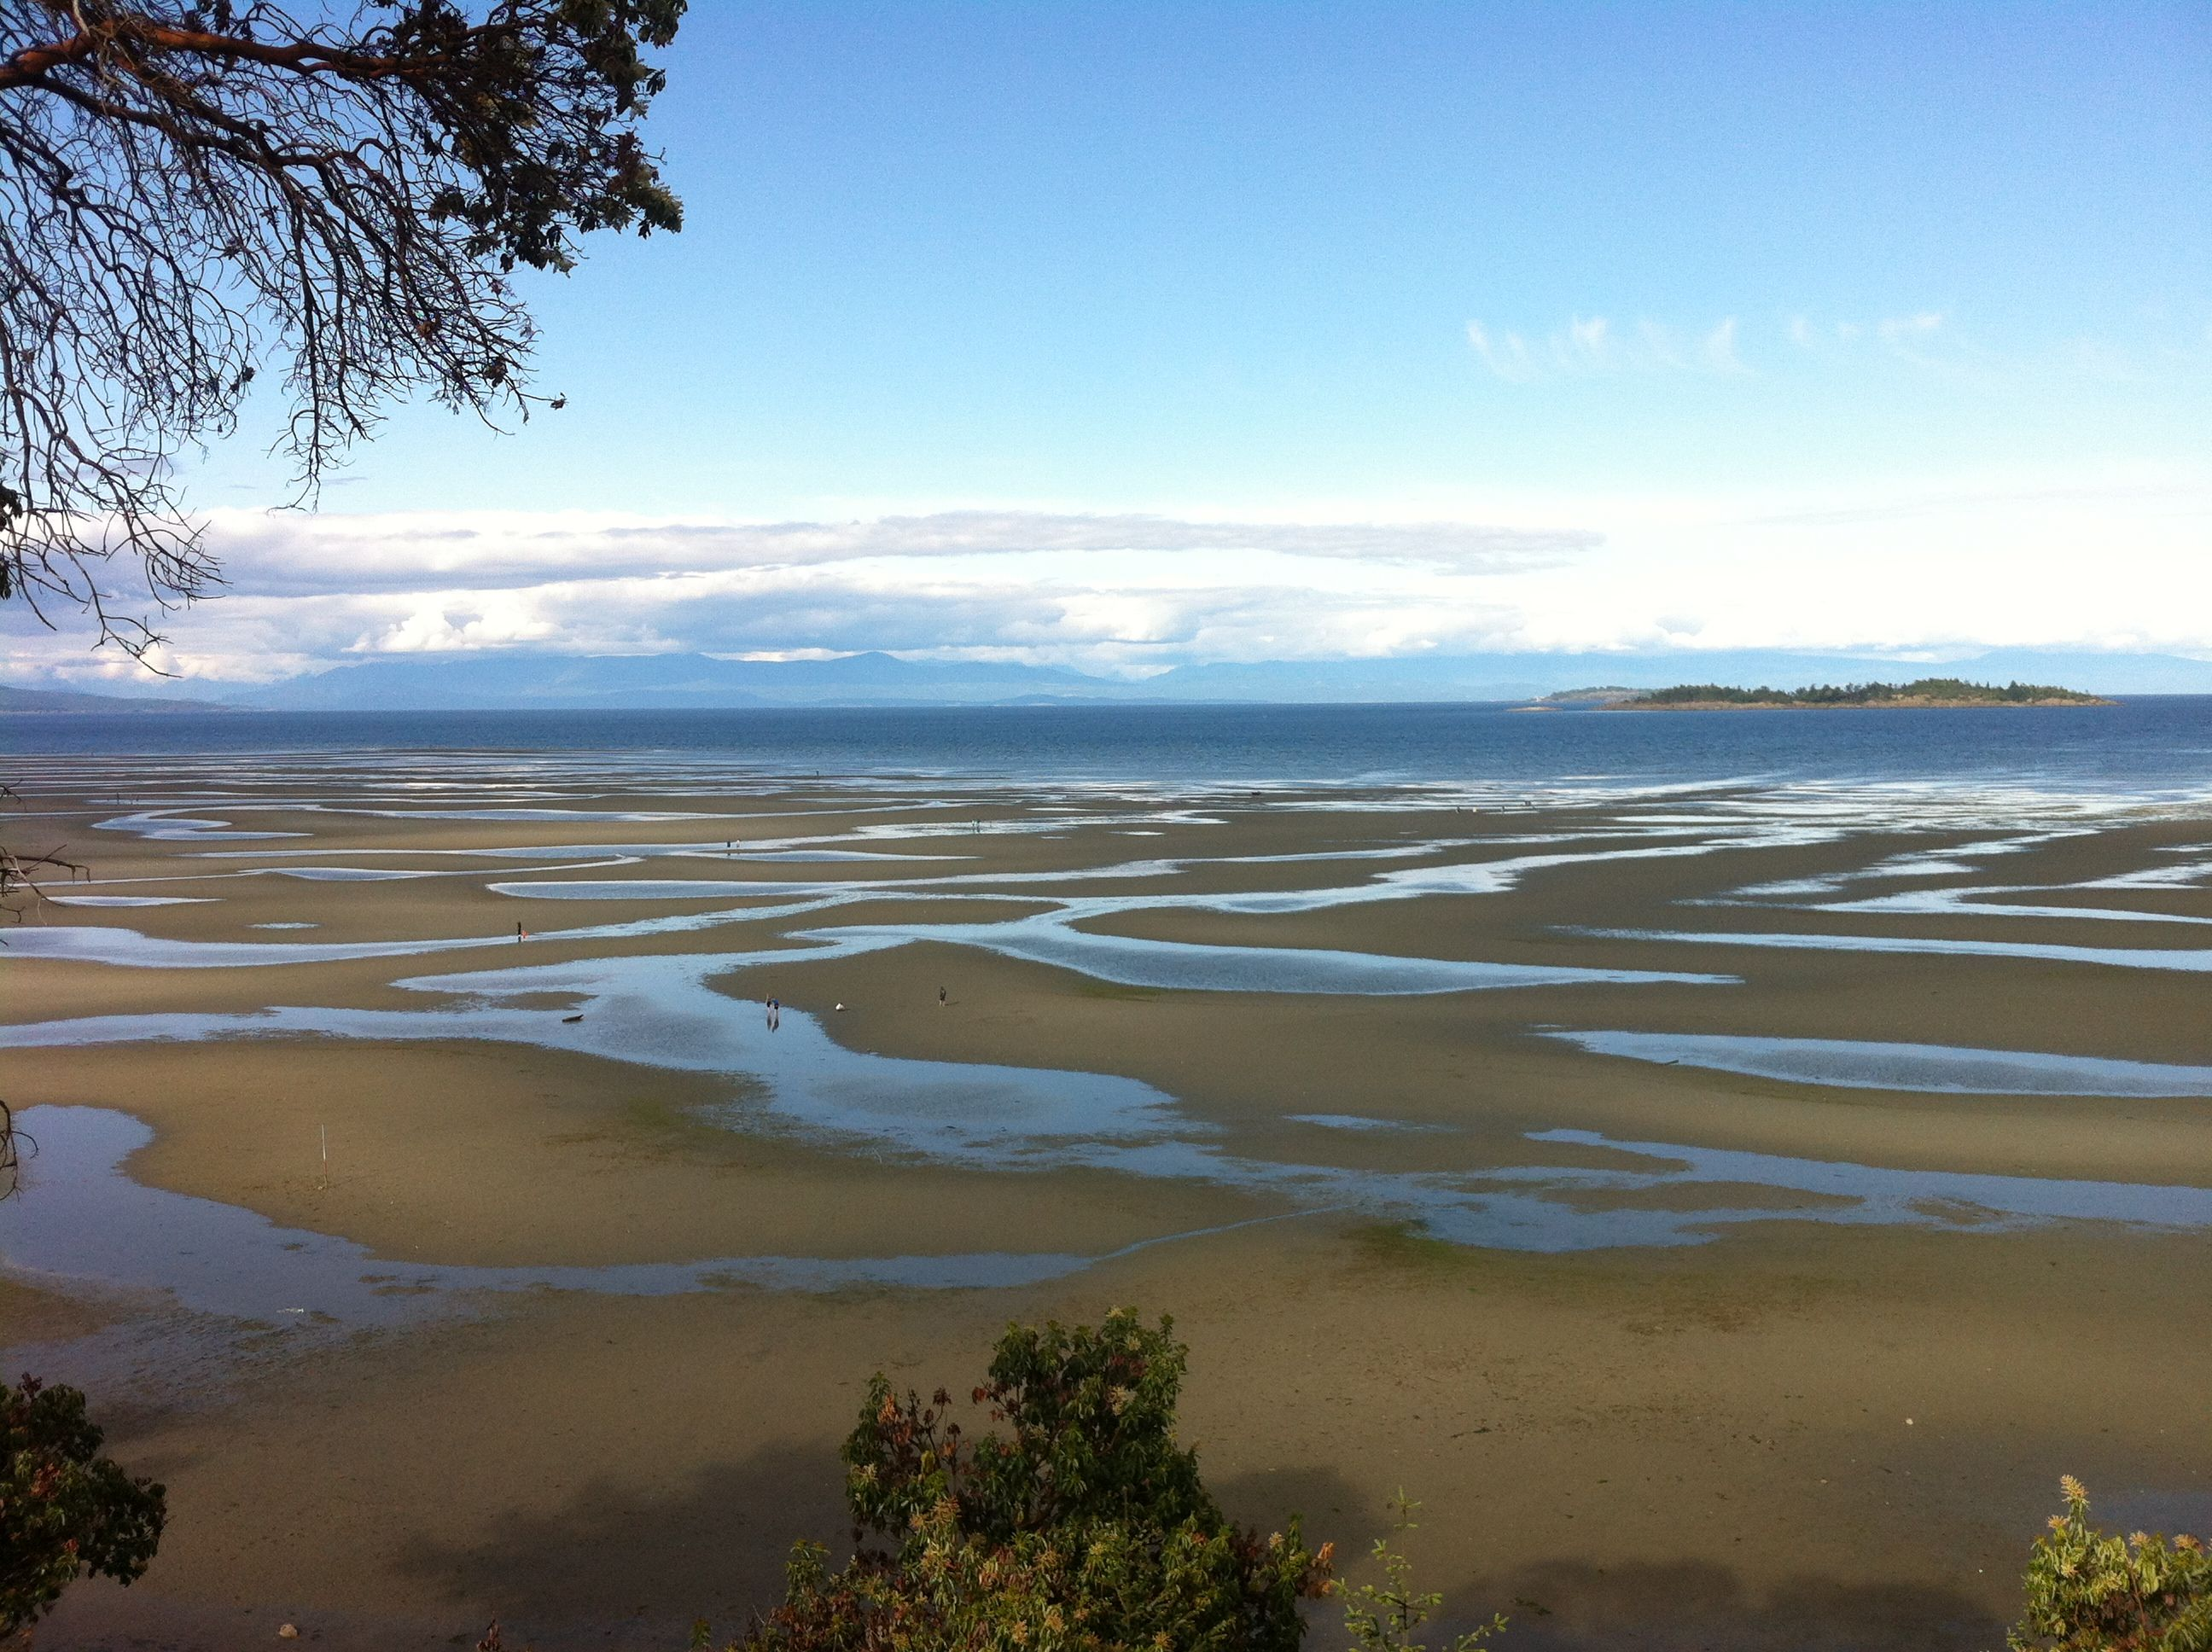 Photos from our trip to Parksville in the Pacific